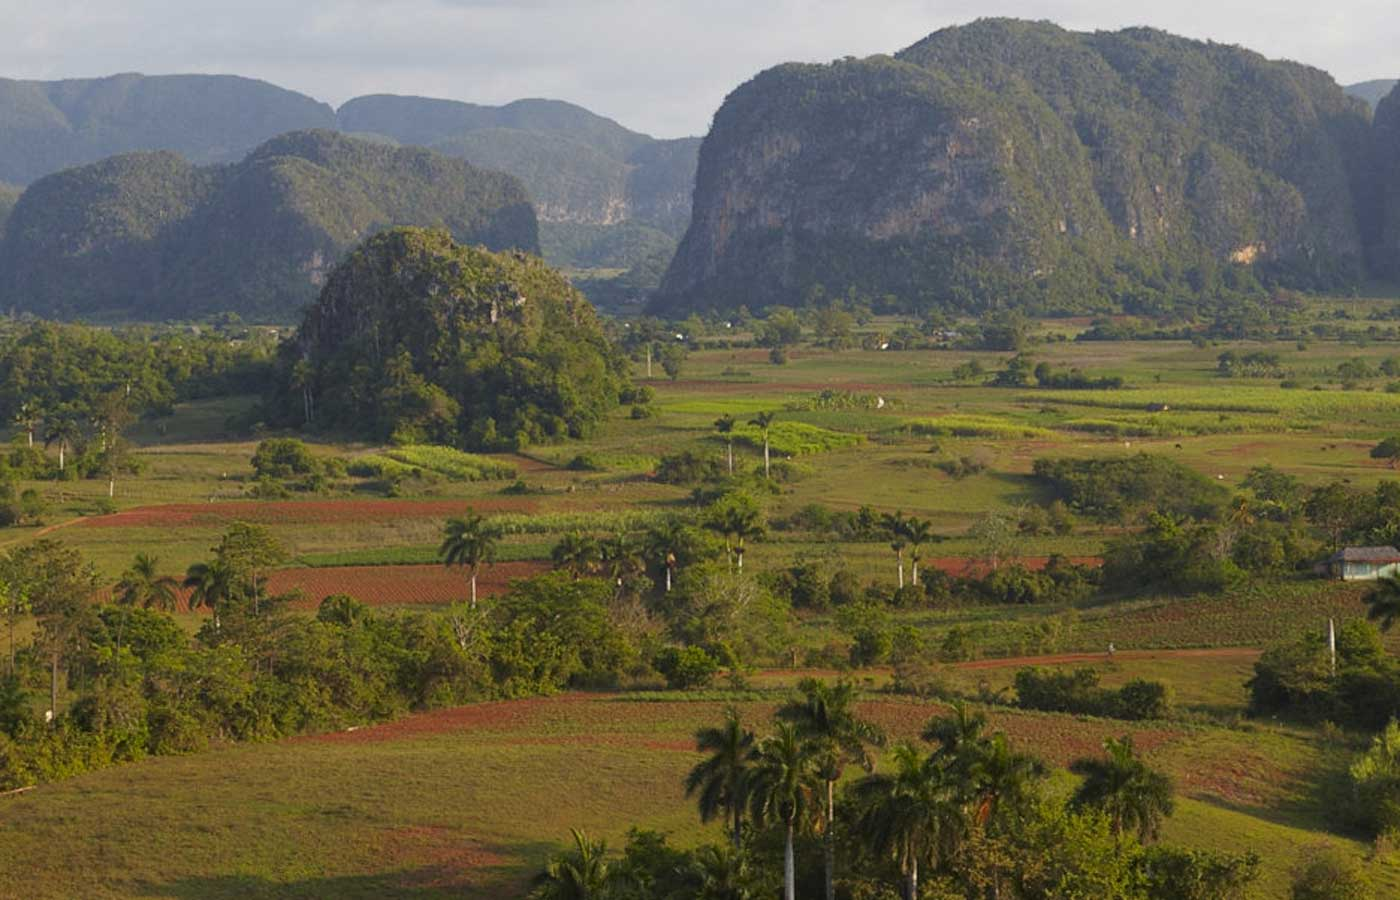 Luxury holidays to Vinales